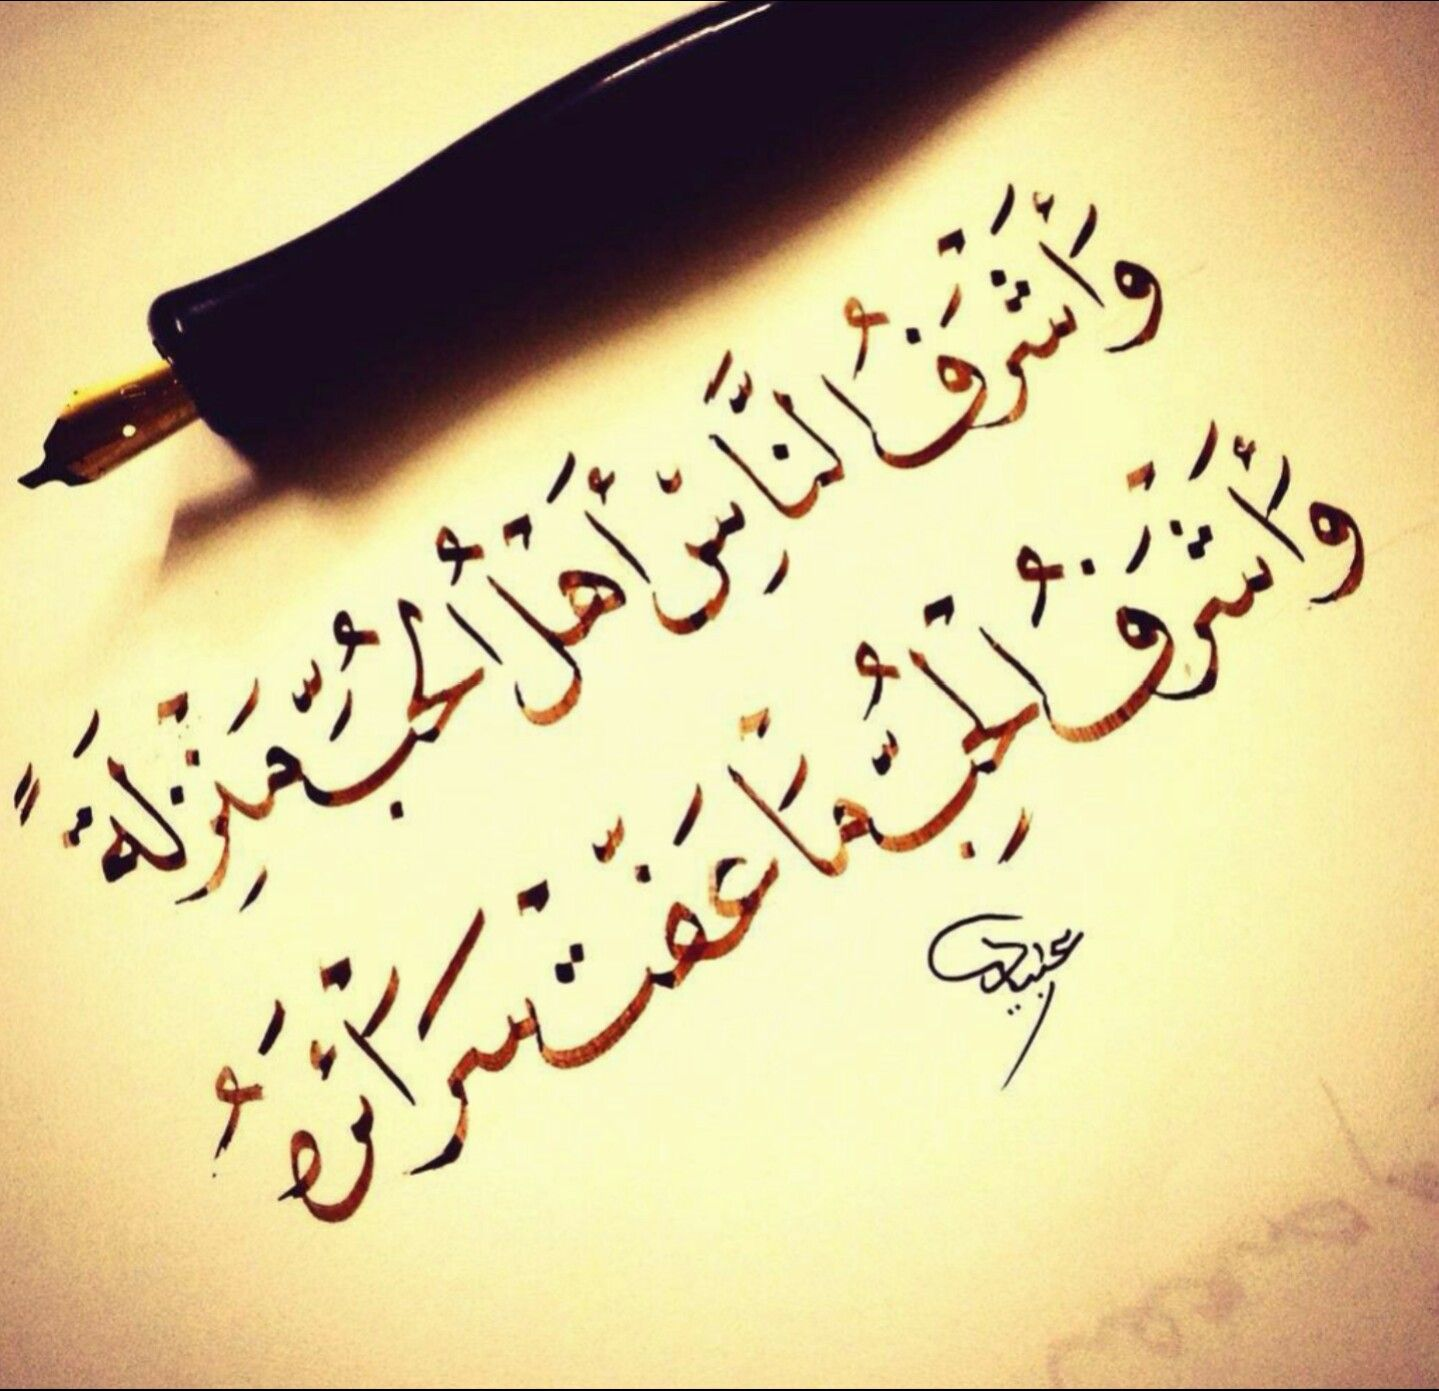 Pin By Tahani On Jokes Beautiful Arabic Words Arabic Love Quotes Arabic Quotes